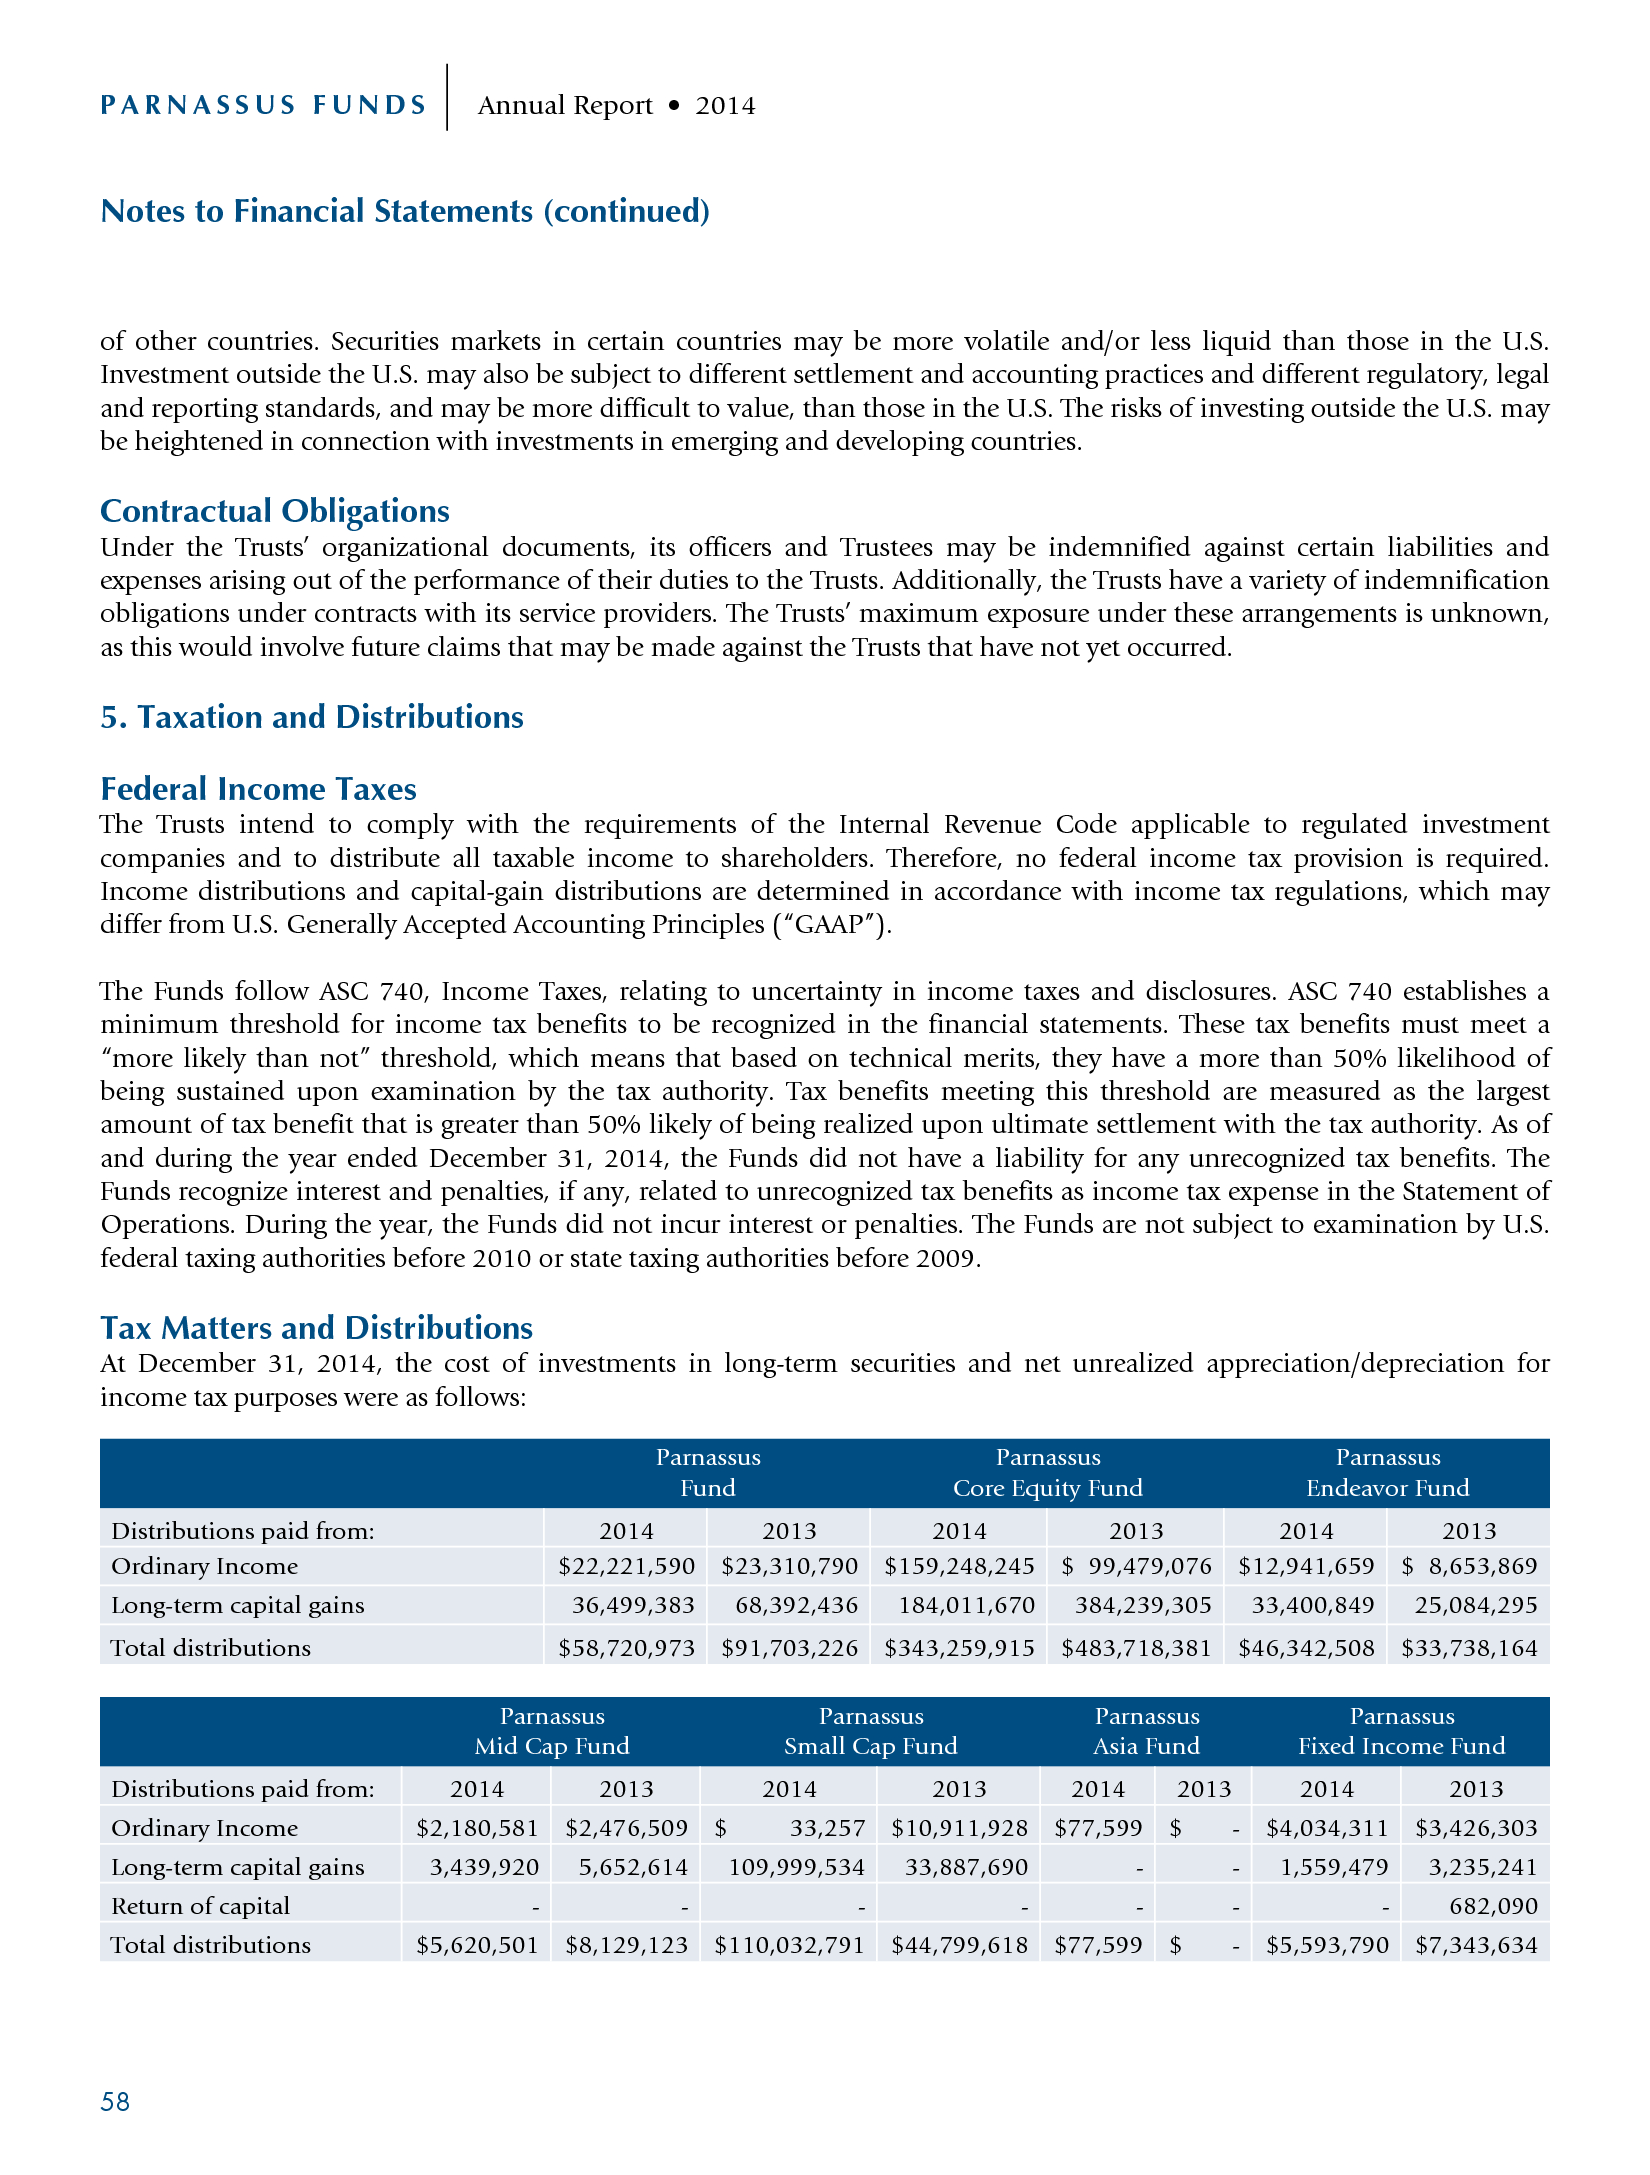 Advisorselect - Parnassus Funds Annual Report - January 2015